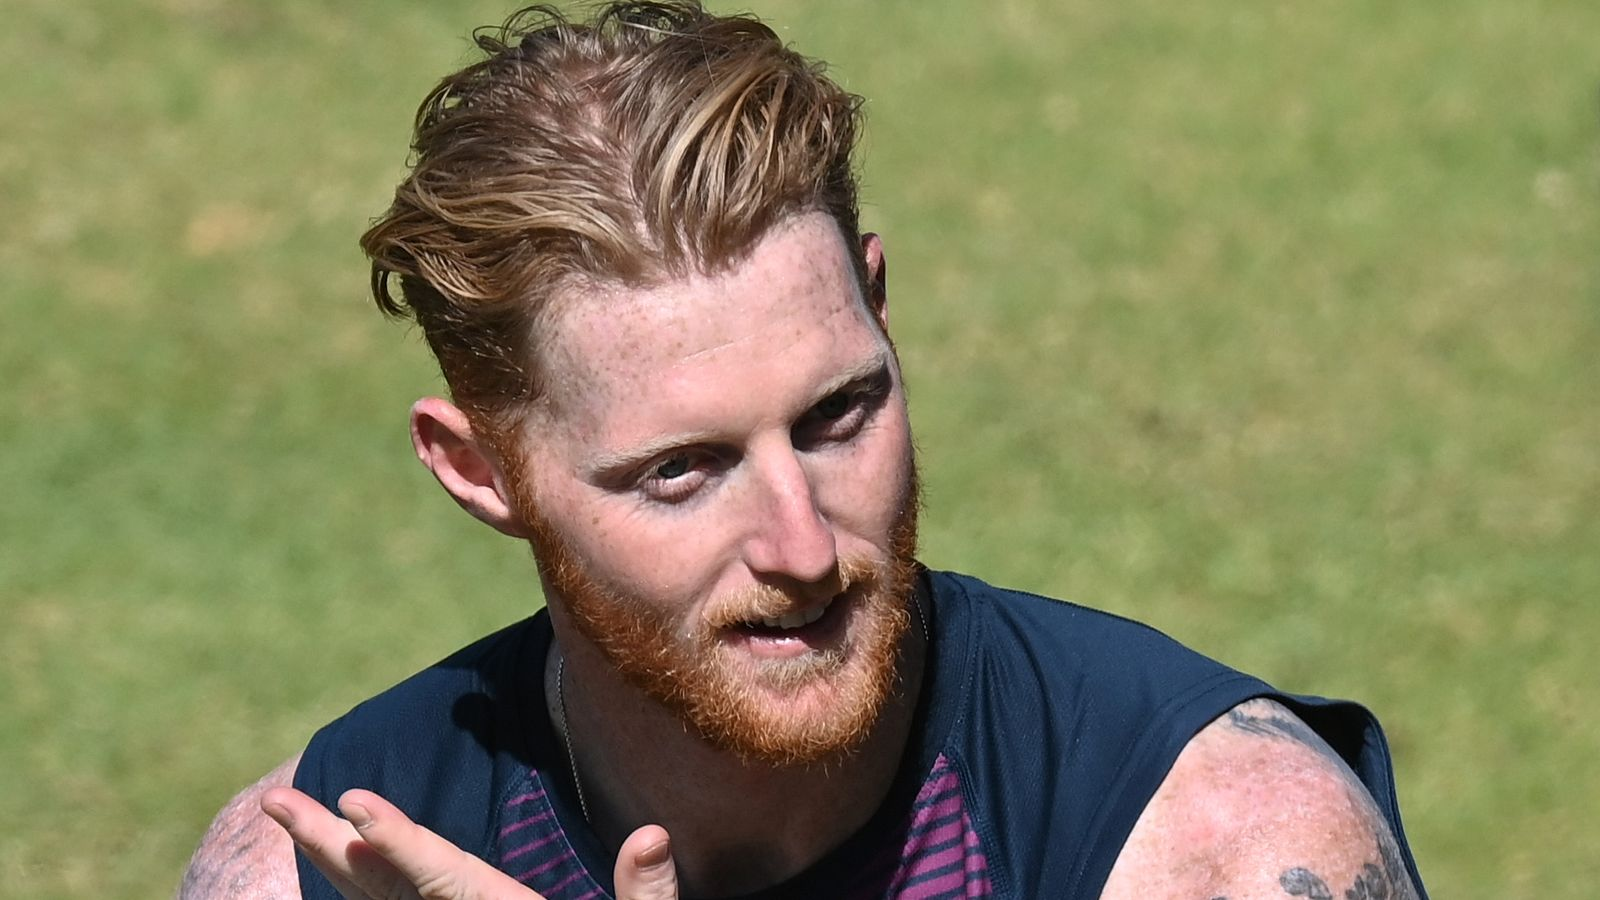 Quinton de Kock says South Africa should be wary of Ben Stokes' T20 form after impressive IPL - Sky Sports